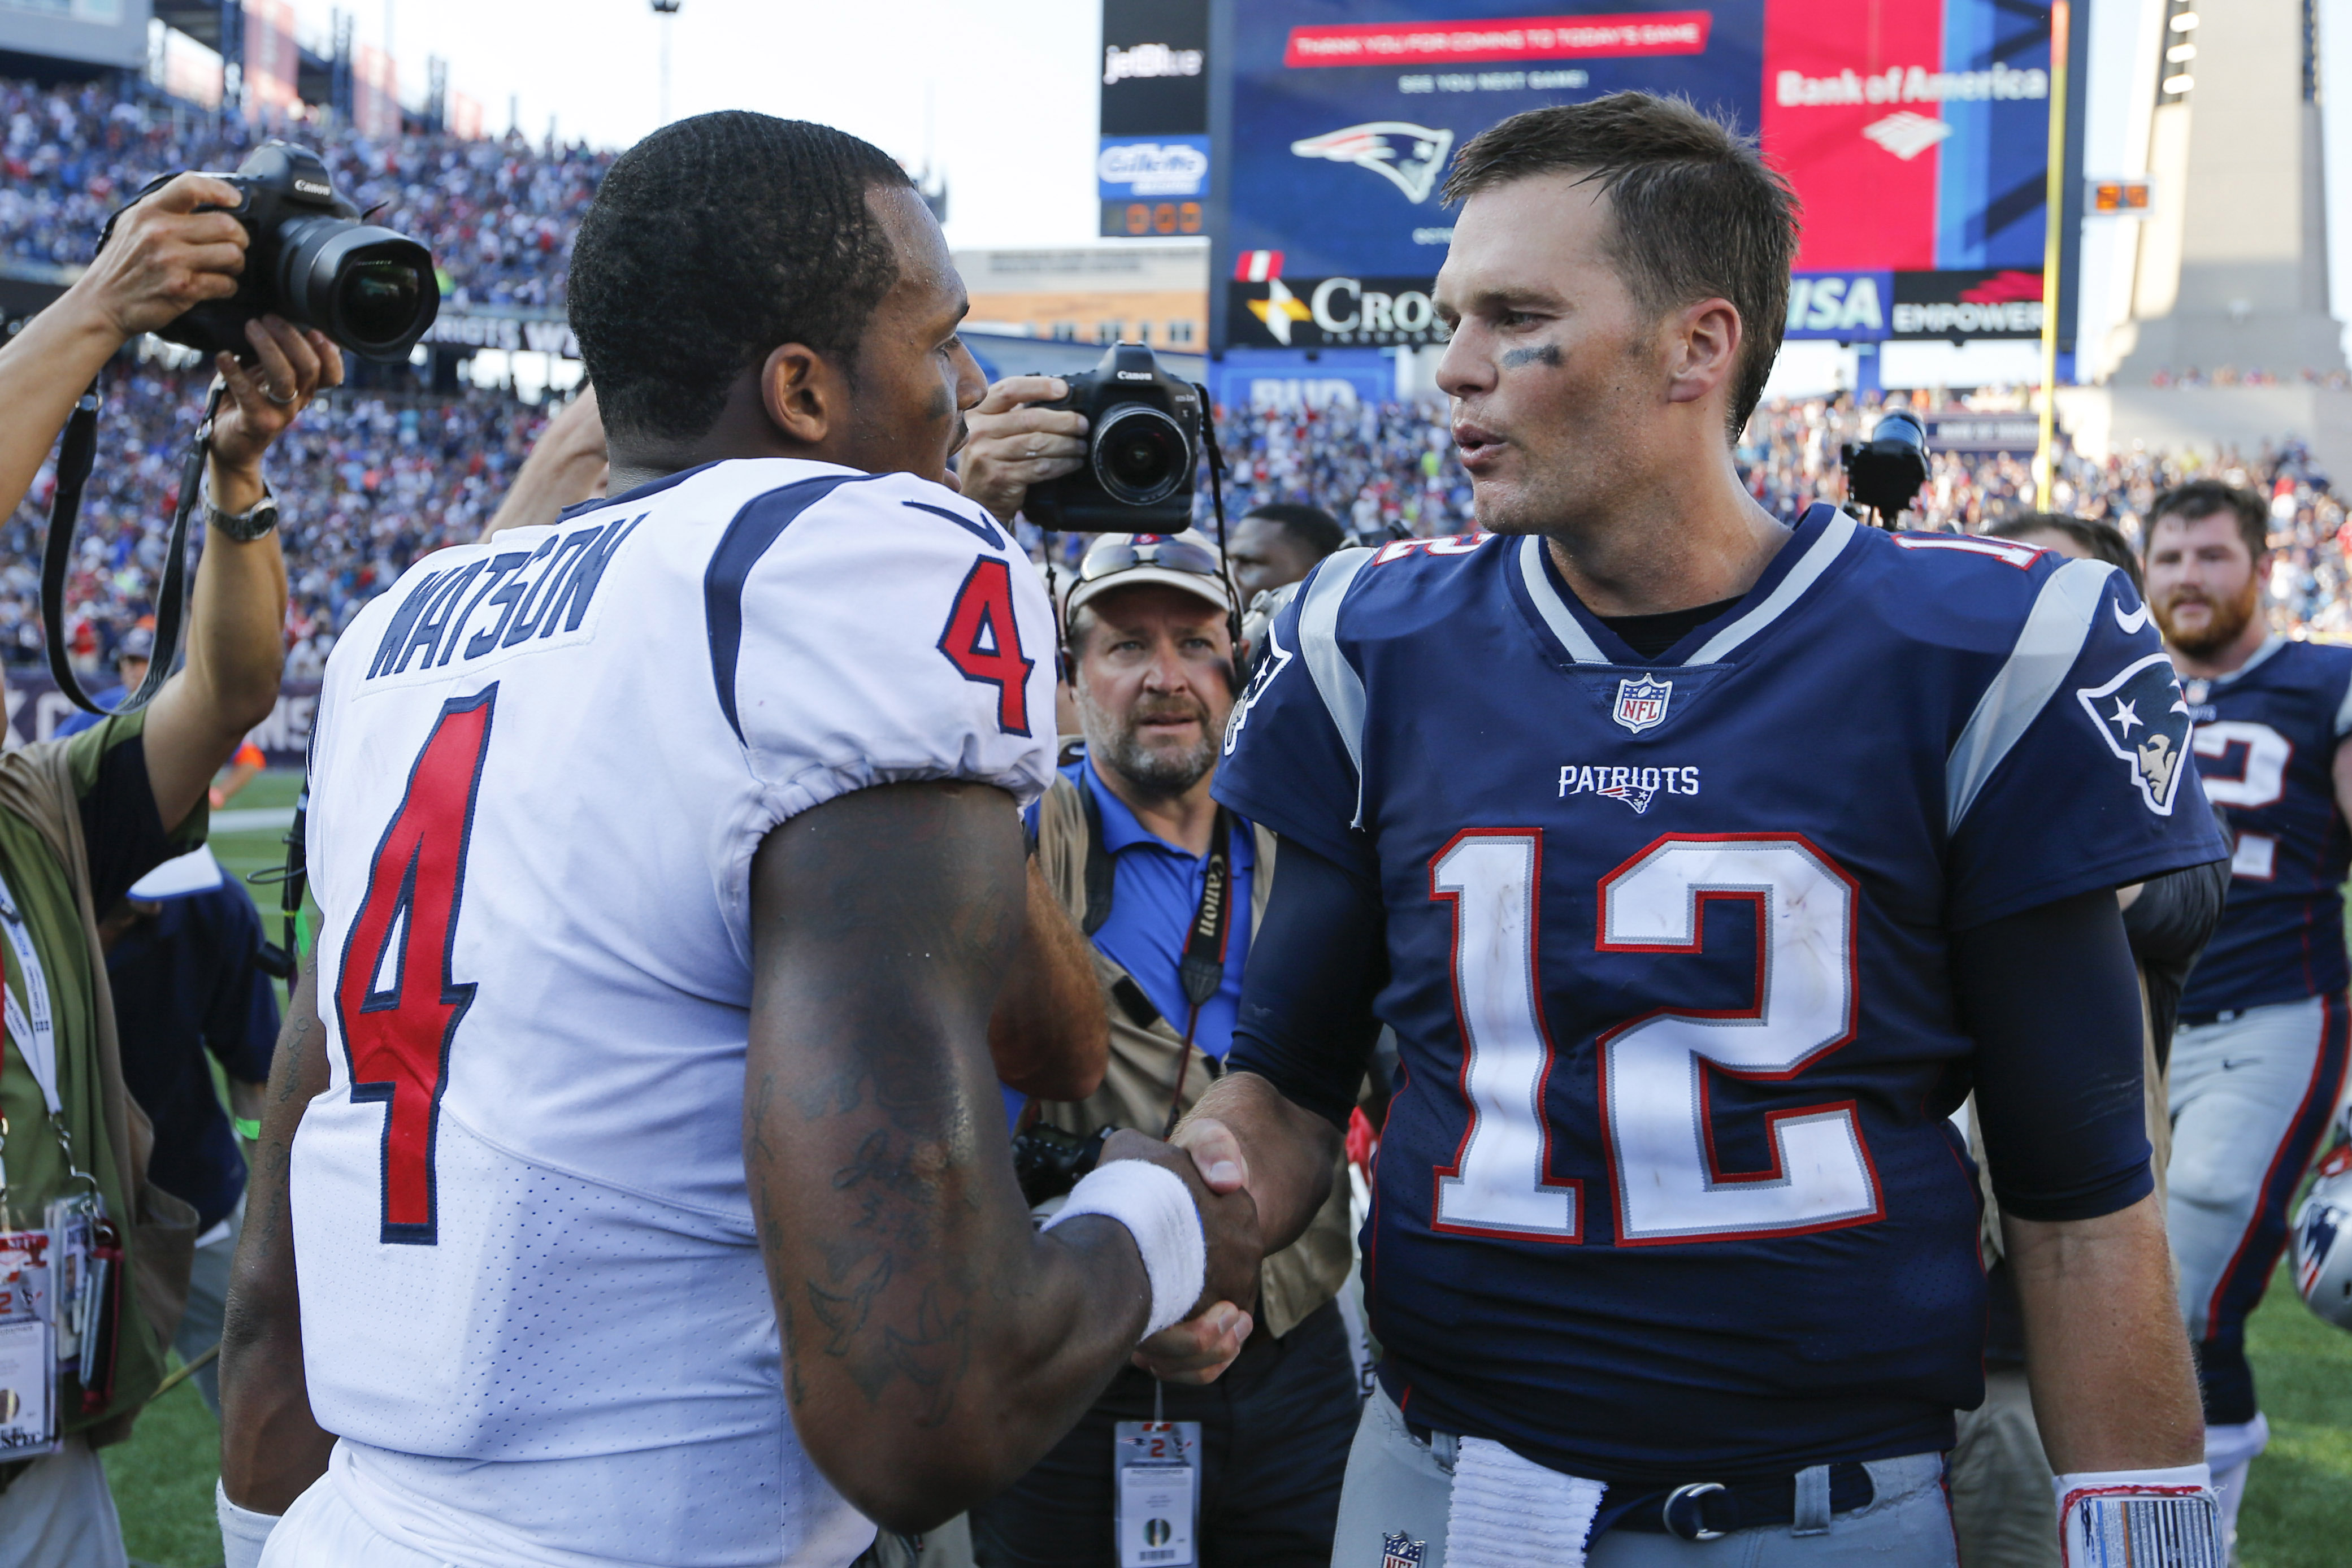 New England Patriots quarterback Tom Brady greets Houston Texans quarterback Deshaun Watson after the game at Gillette Stadium.